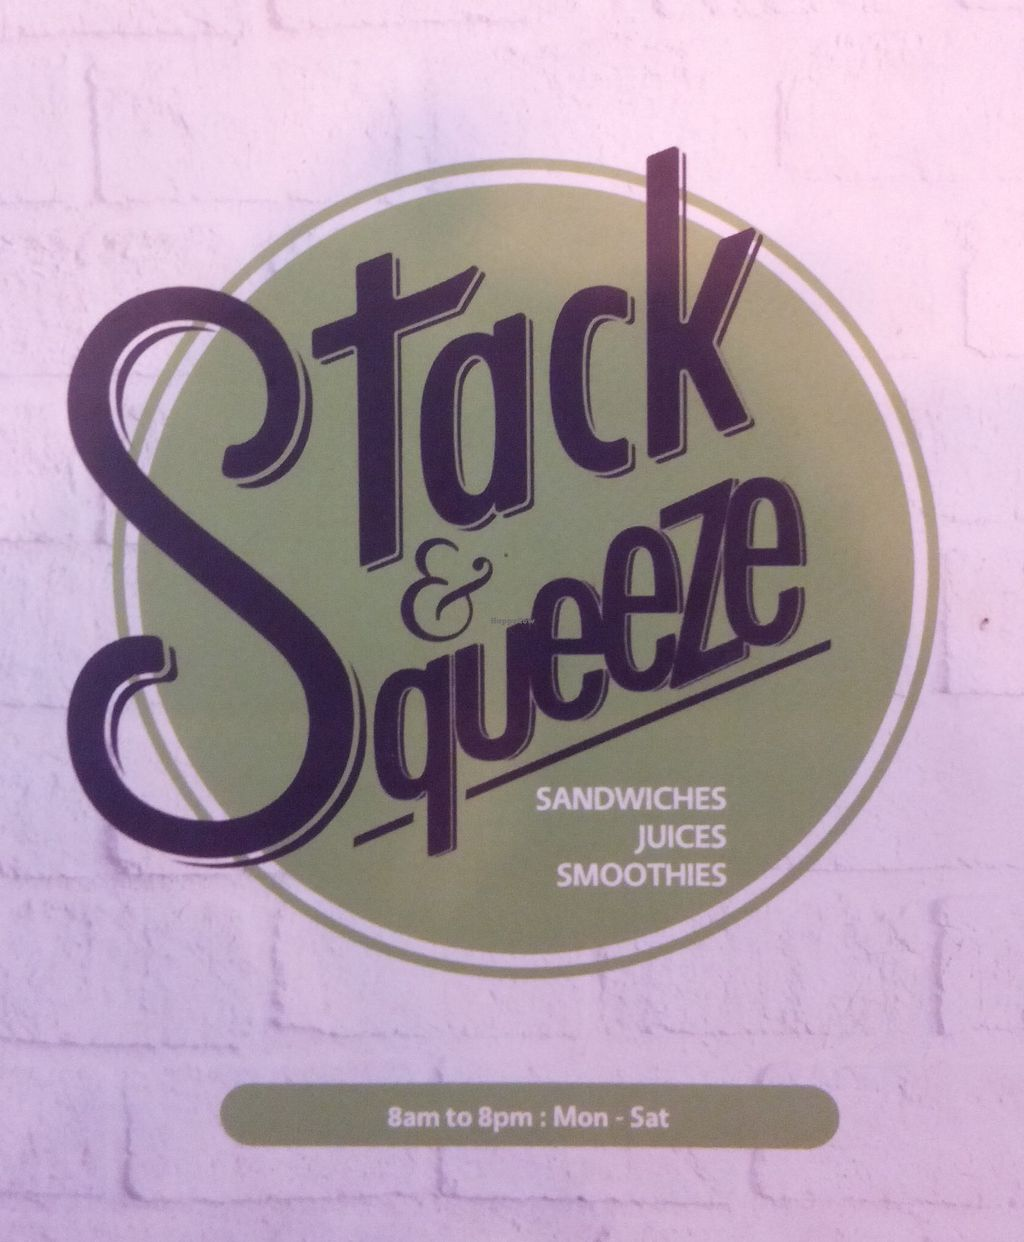 """Photo of Stack & Squeeze  by <a href=""""/members/profile/JonathanP"""">JonathanP</a> <br/>Stack & Squeeze logo <br/> January 19, 2018  - <a href='/contact/abuse/image/107801/348490'>Report</a>"""